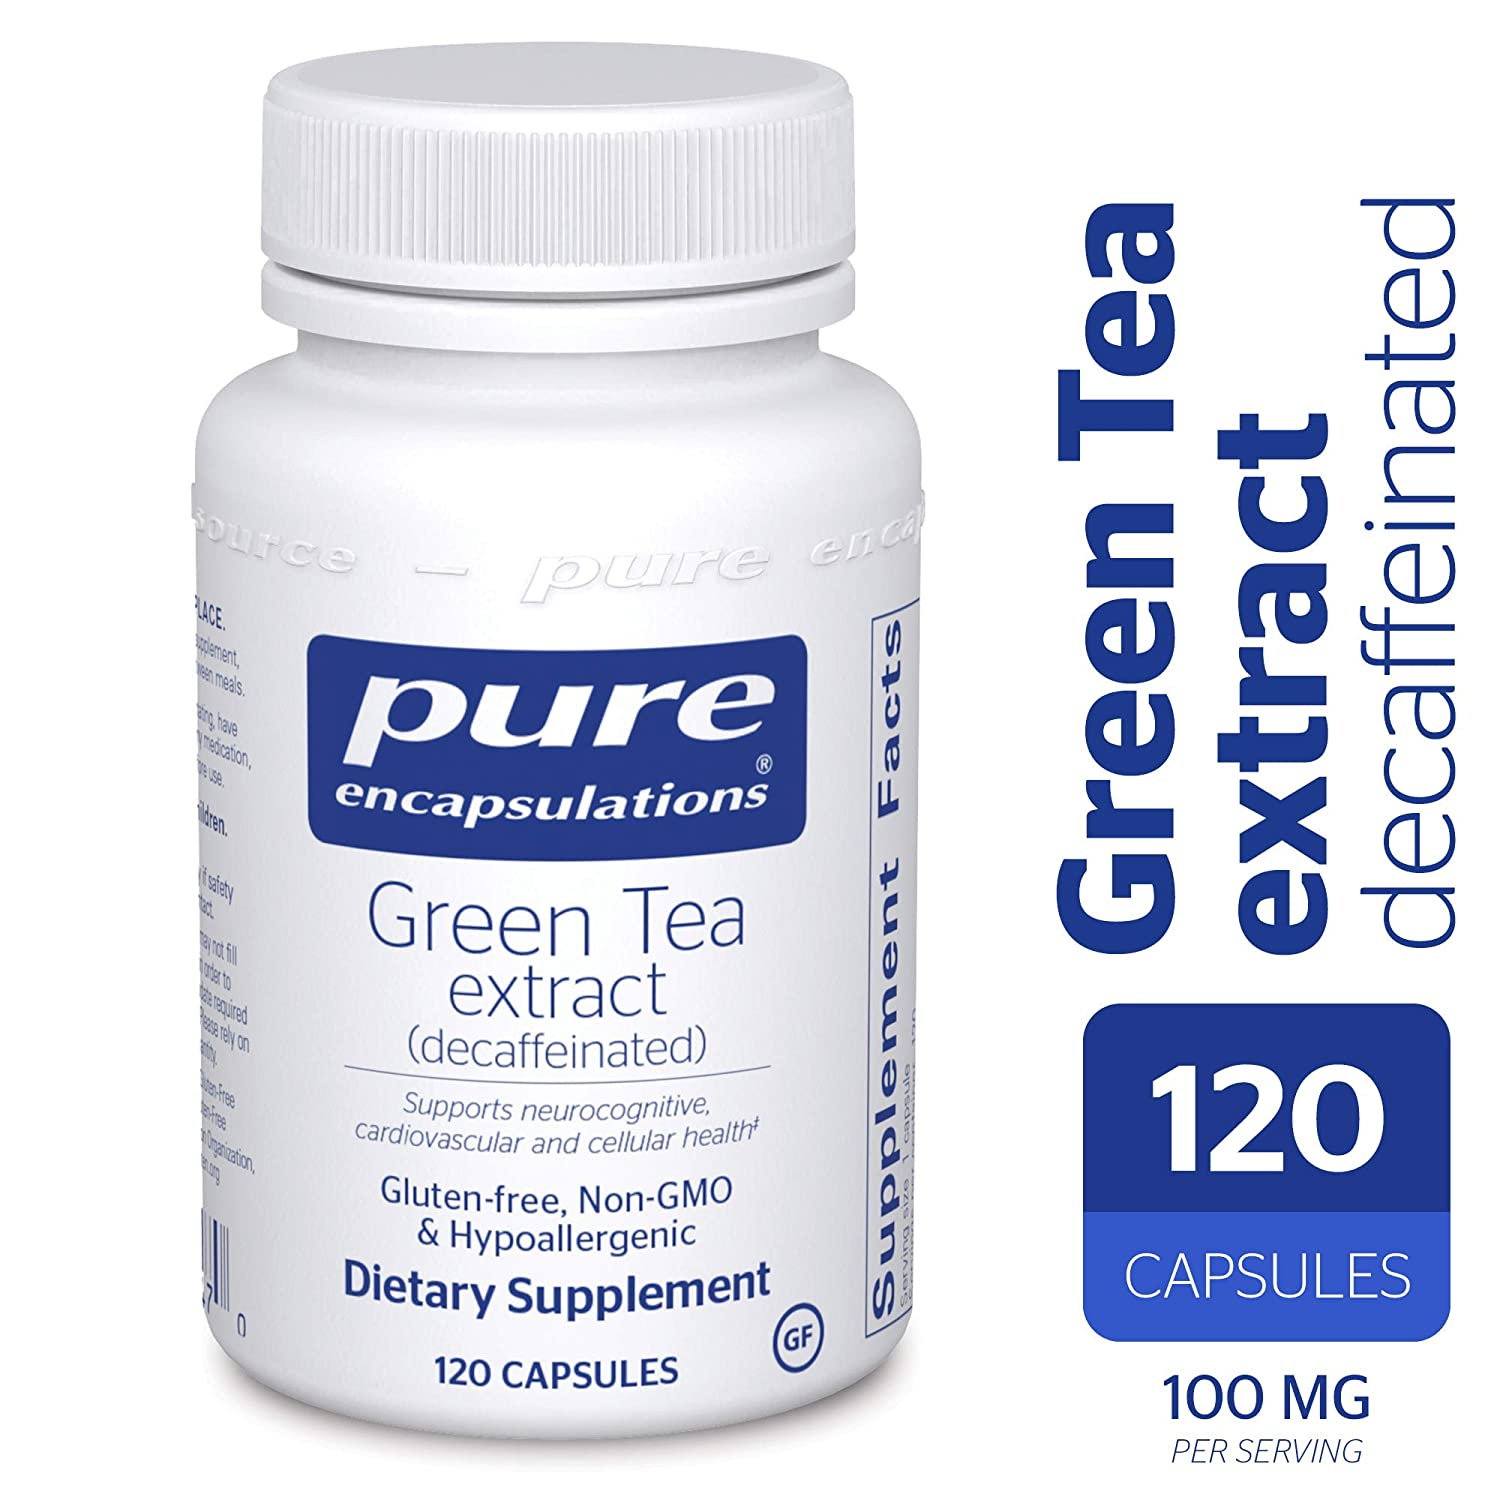 Pure Encapsulations – Green Tea Extract – Decaffeinated – Hypoallergenic Antioxidant Support for All Cells in The Body* – 120 Capsules